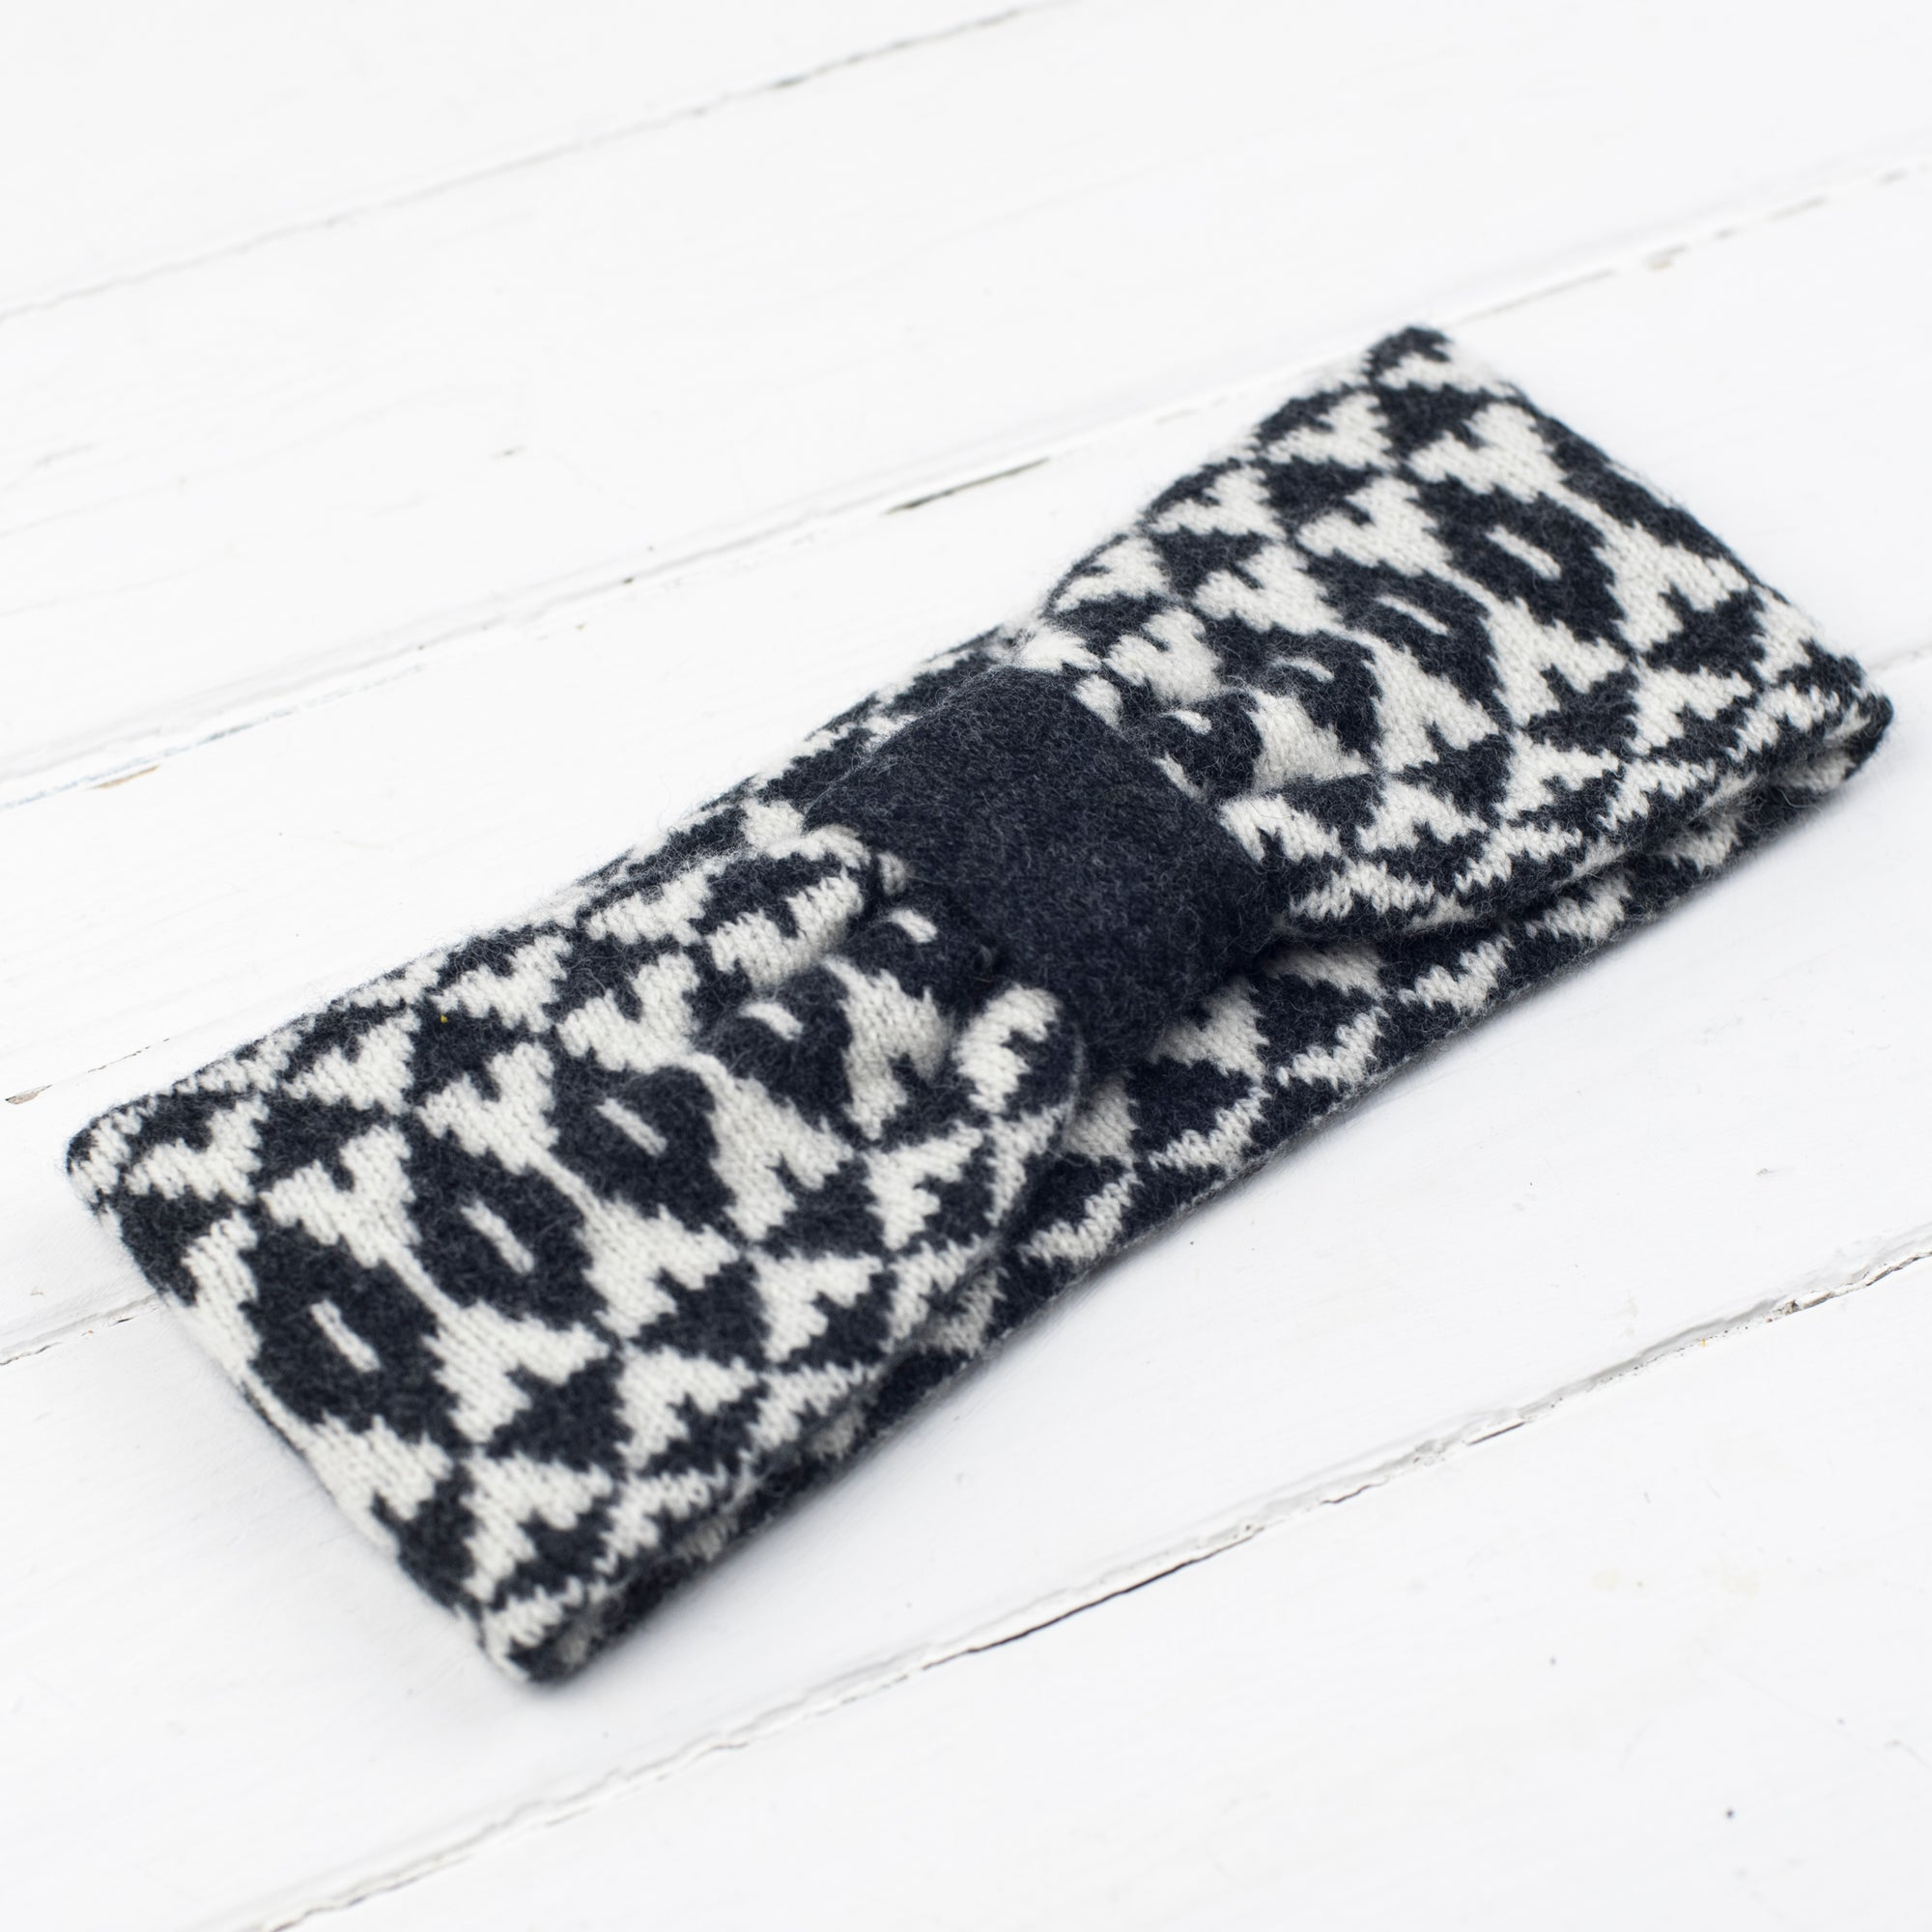 Mirror headband - monochrome